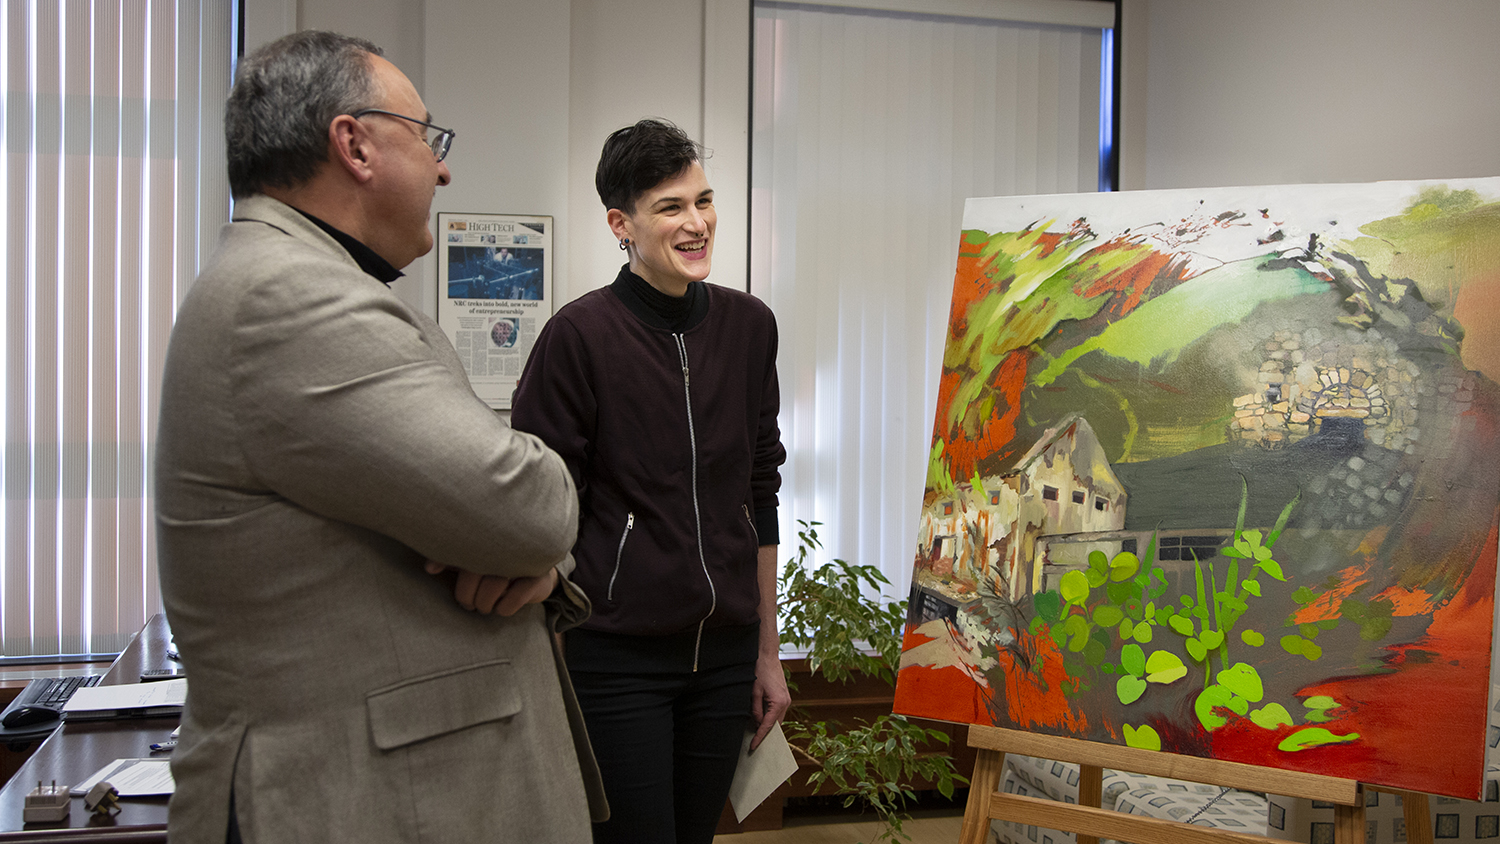 Sylvain Charbonneau and Nic Cooper are standing and smiling in front of Cooper's painting.